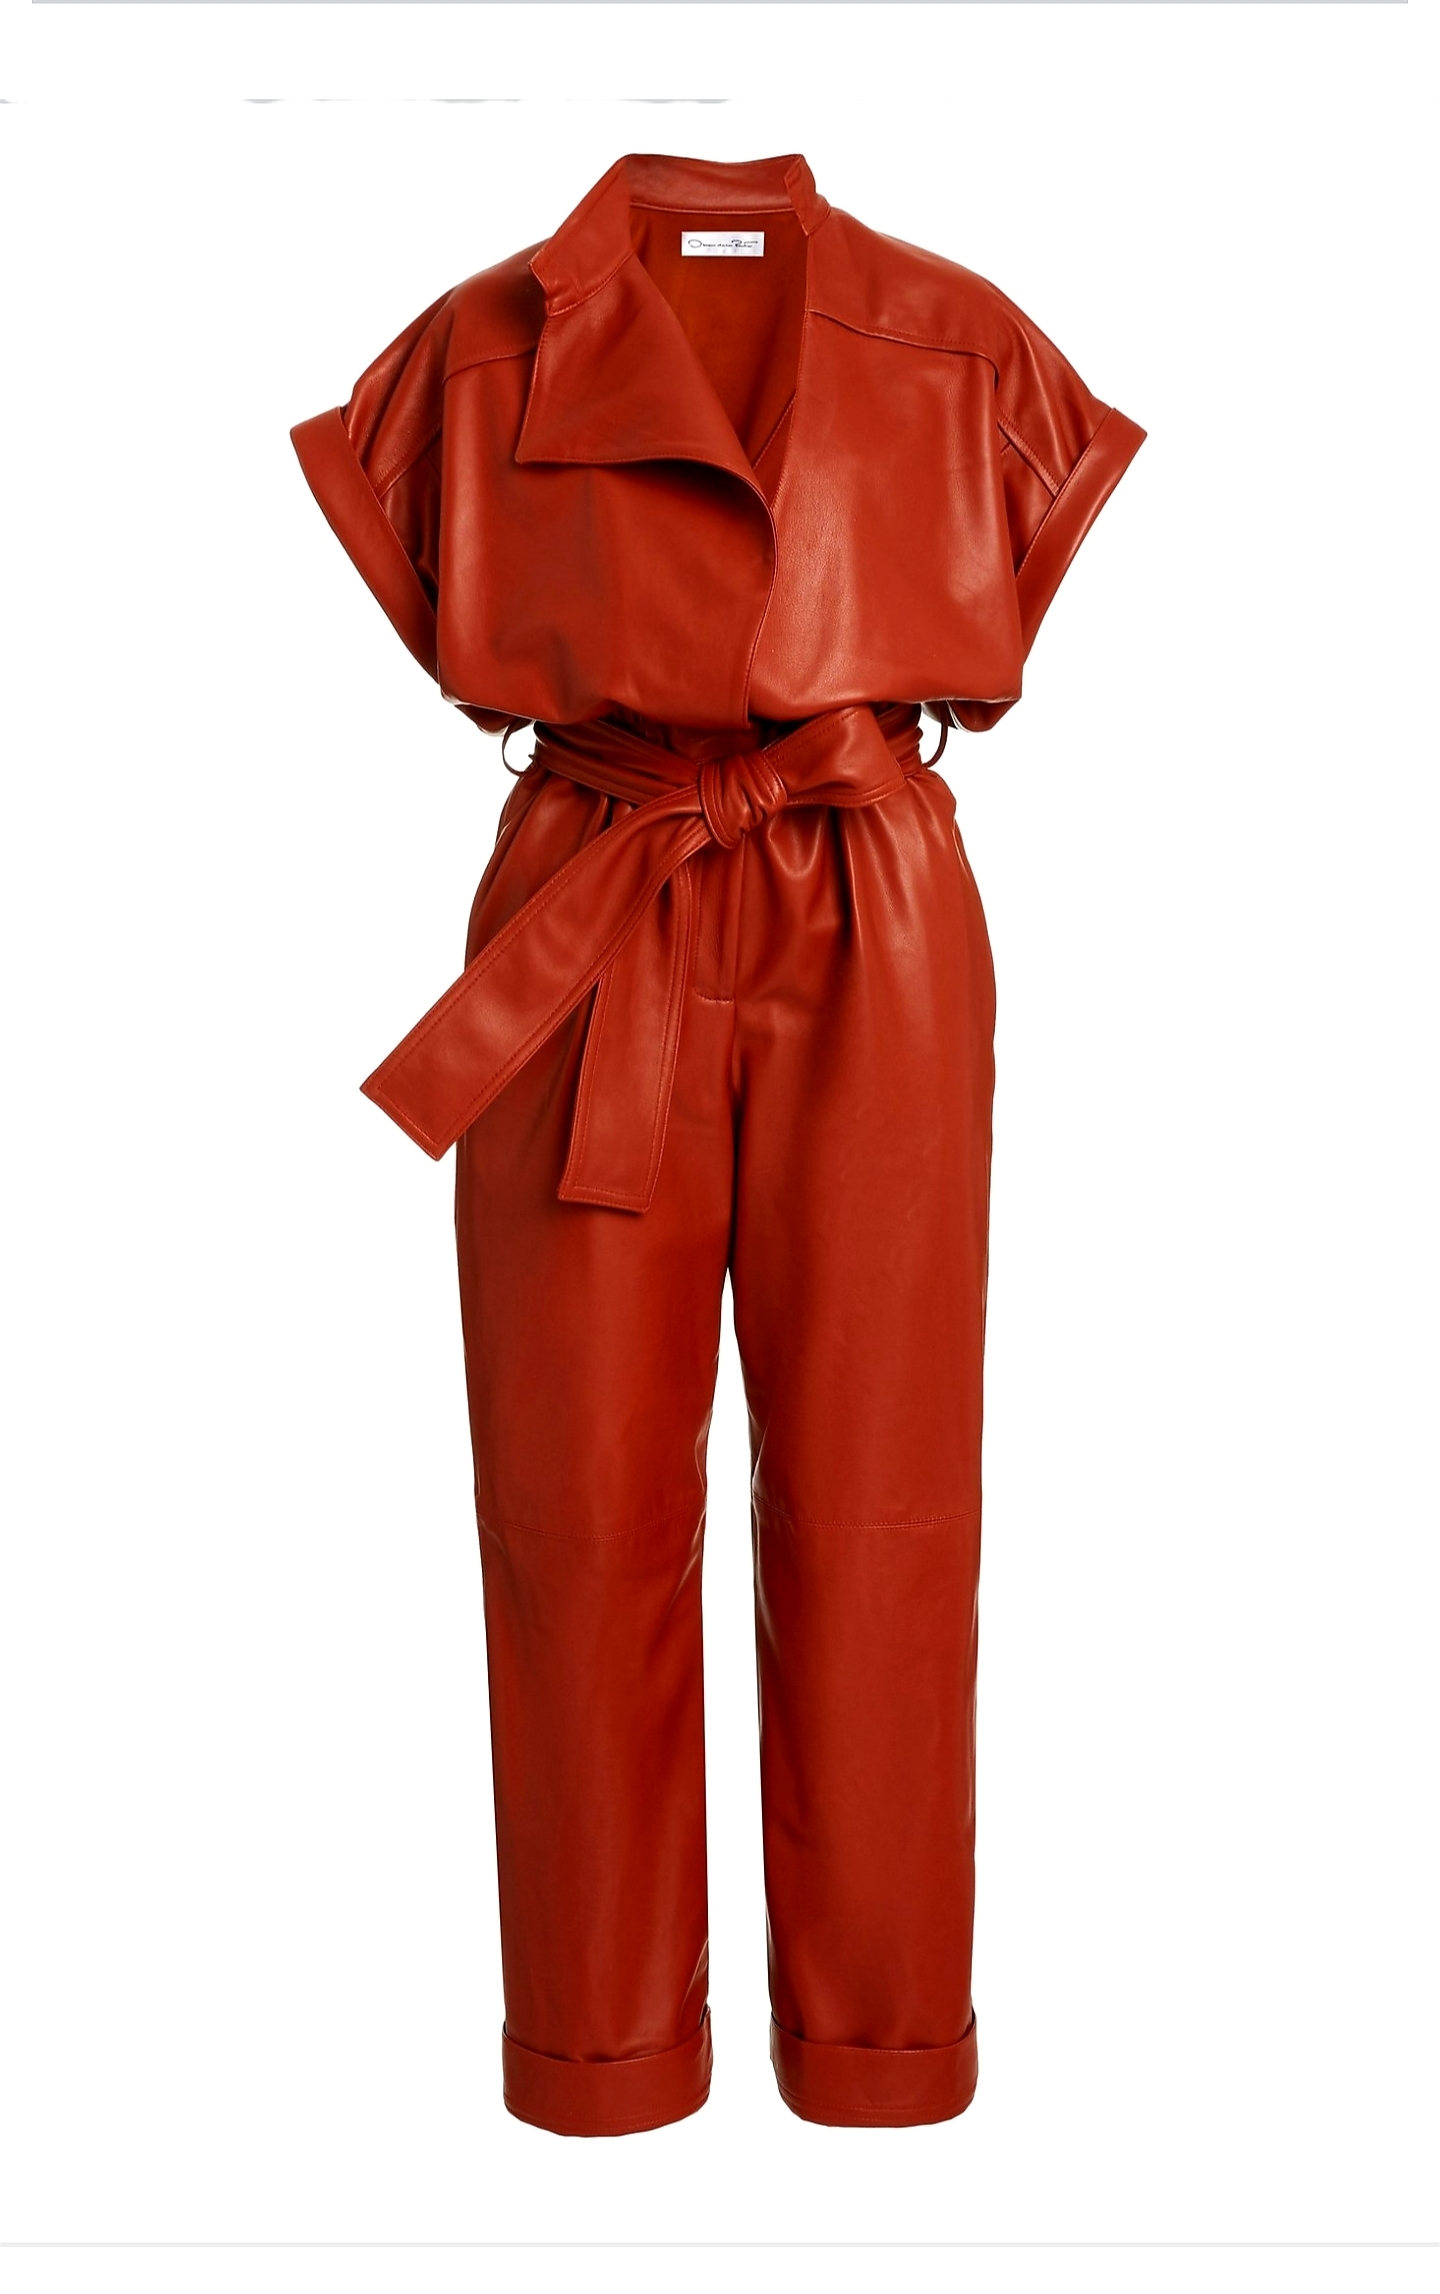 Oscar de la Renta Oscar de la Renta Belted Leather Jumpsuit